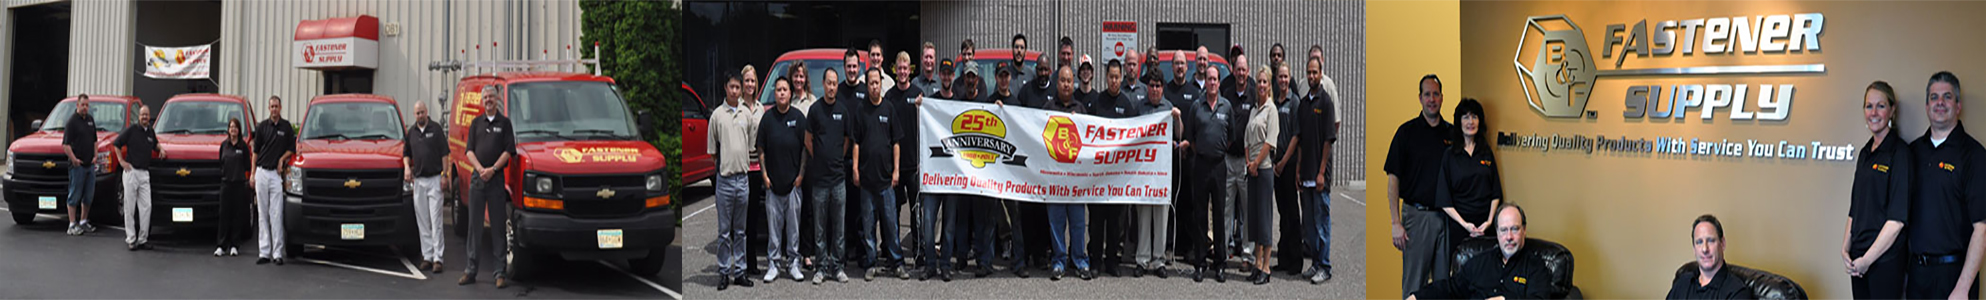 B&F Fastener and Supply Team